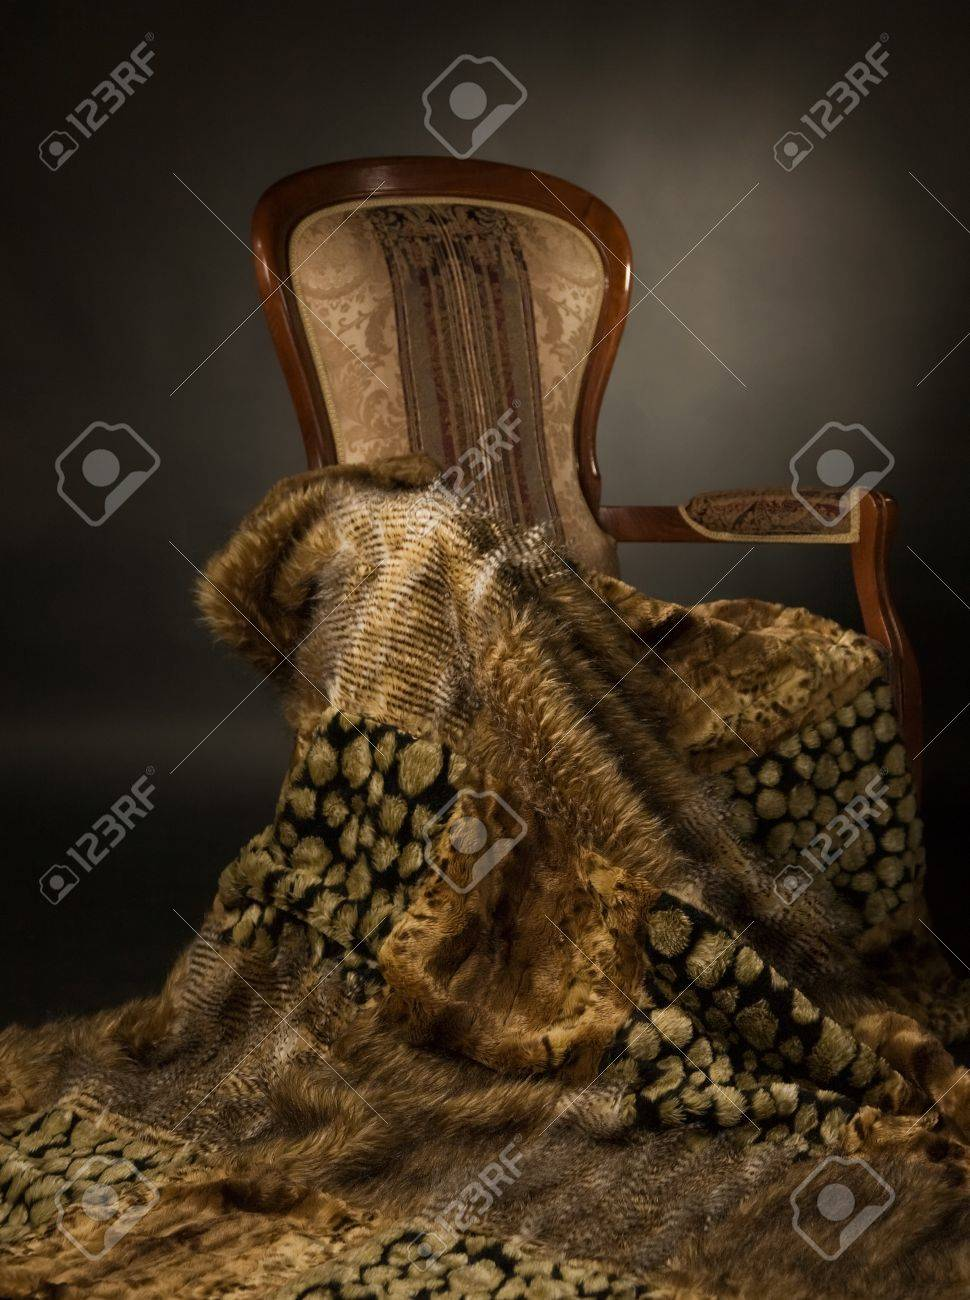 Elegant chair with a fur blanket Stock Photo - 9058299